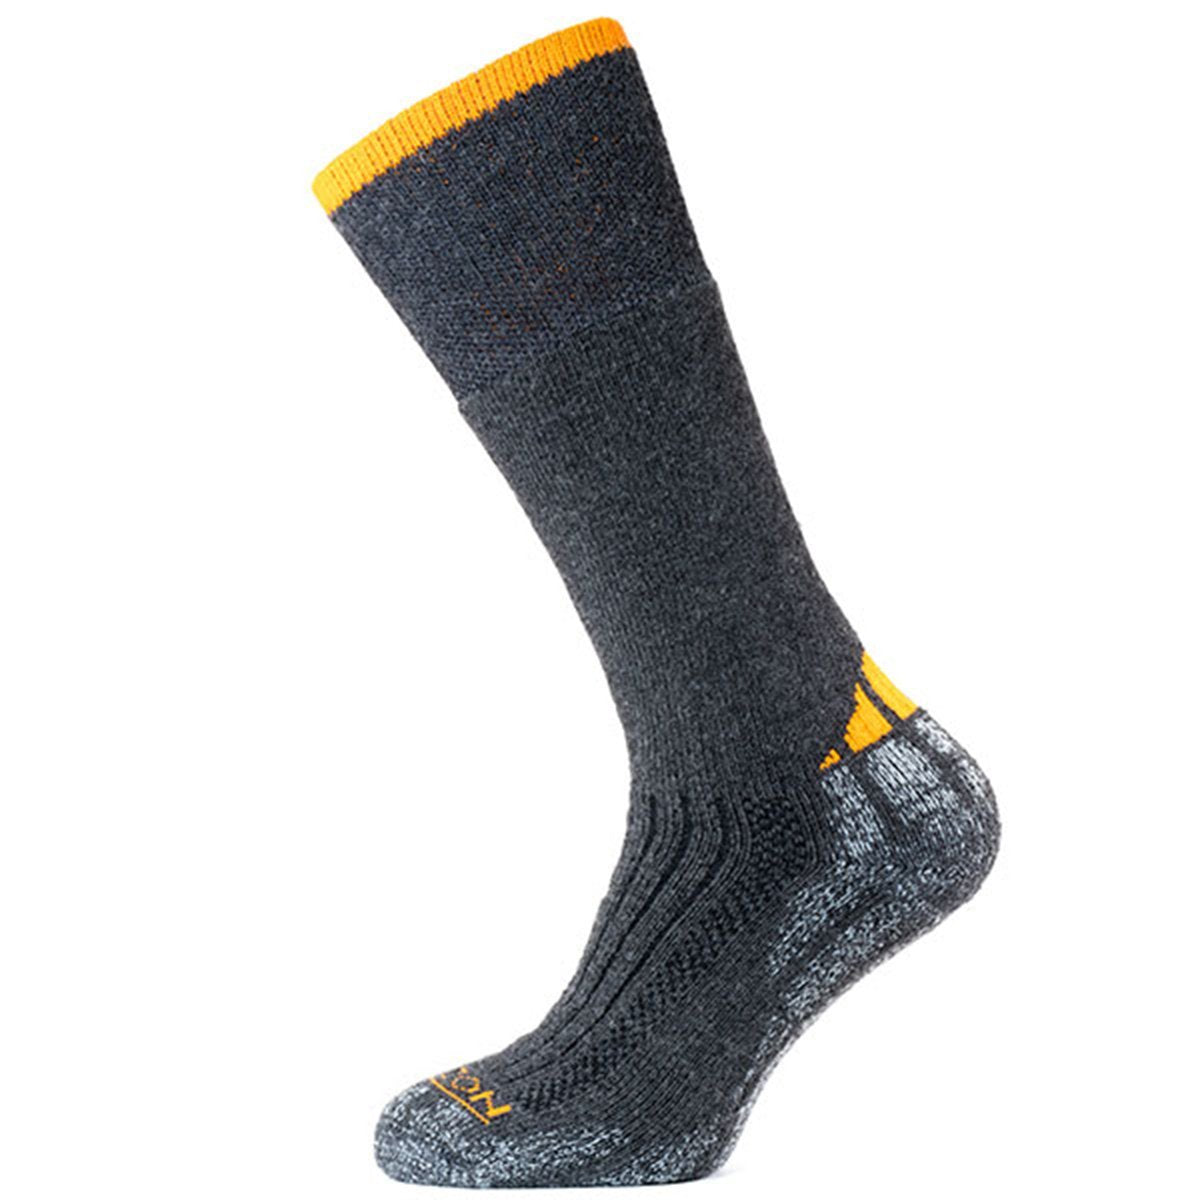 Horizon Socks » Performance Extreme | Mens Wool Socks - Charcoal/Orange